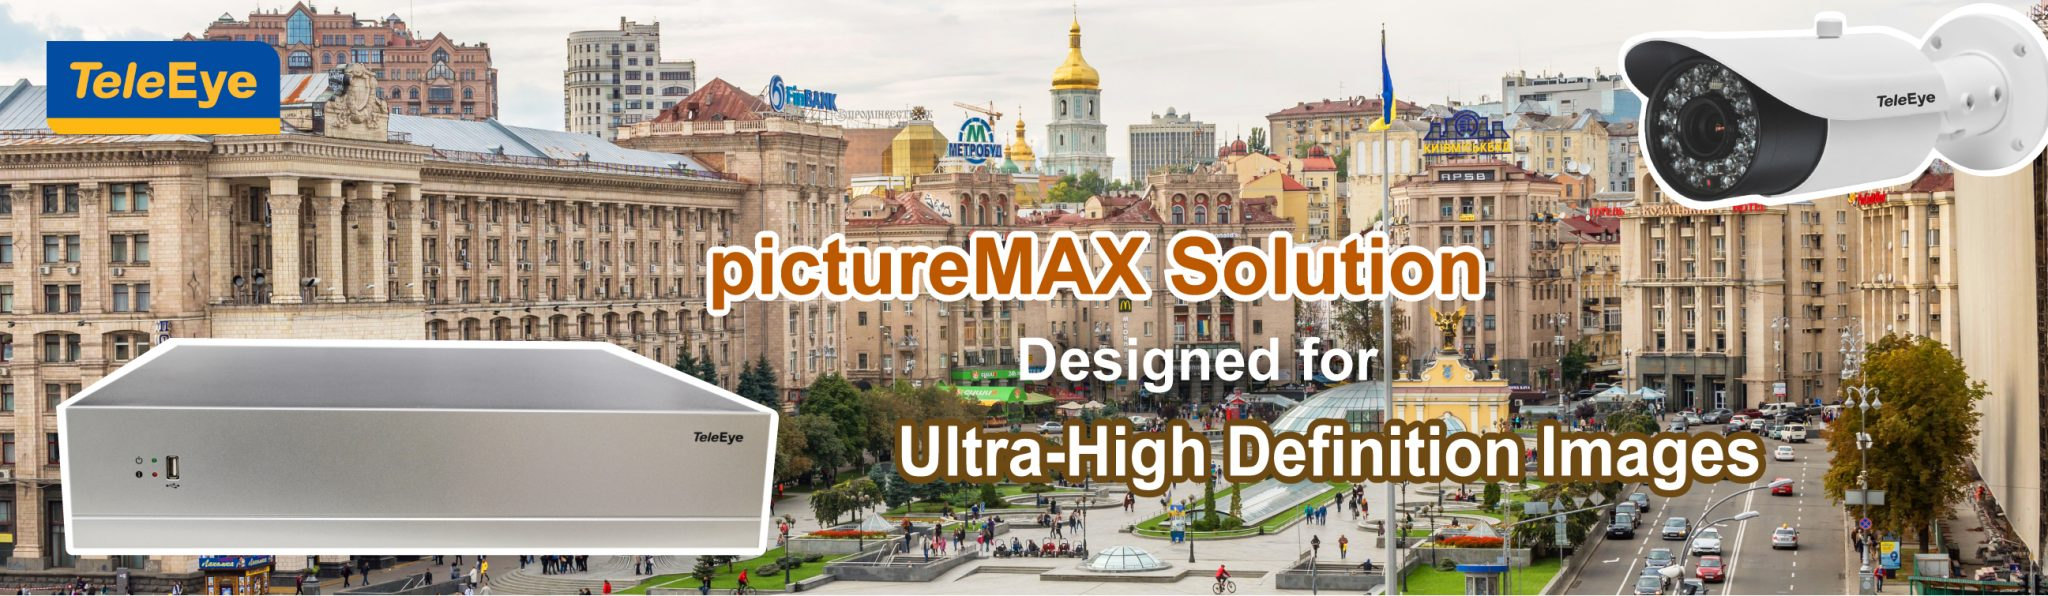 pictureMAX solution compression technology